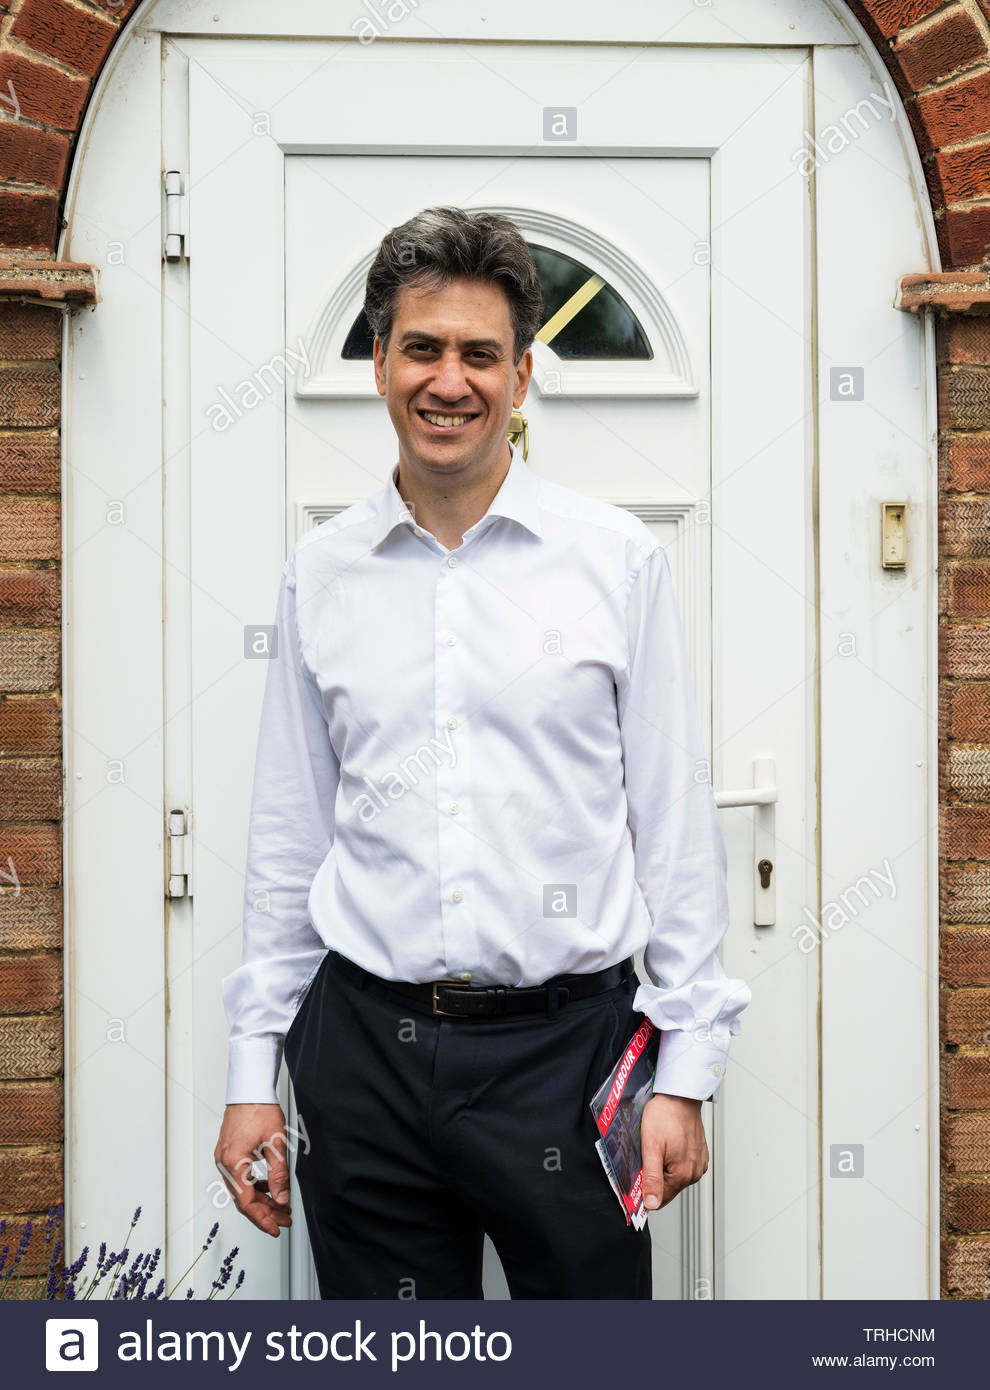 Peterborough, Cambridgeshire, UK, June 6th, 2019. The Labour Party sends out the big guns in their fight to win the Peterborough by-election. Former Labour Party leader, Ed Miliband, on the campaign trail for the Peterborough by-election. Credit: Michael David Murphy / Alamy Live News - Stock Image